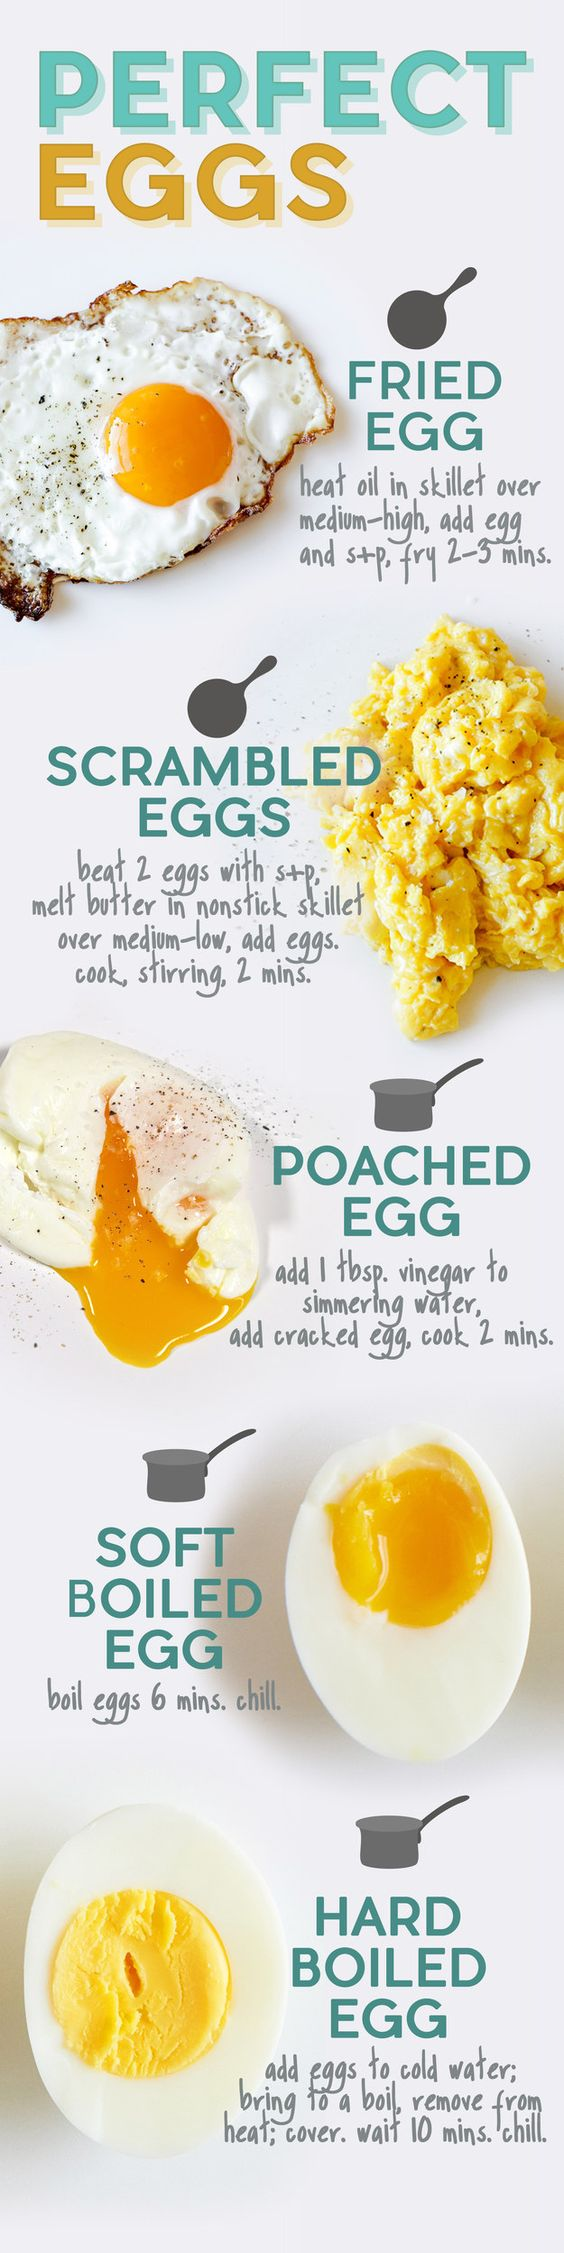 Fried, scrambled, boiled (hard and soft) and of course, POACHED.: